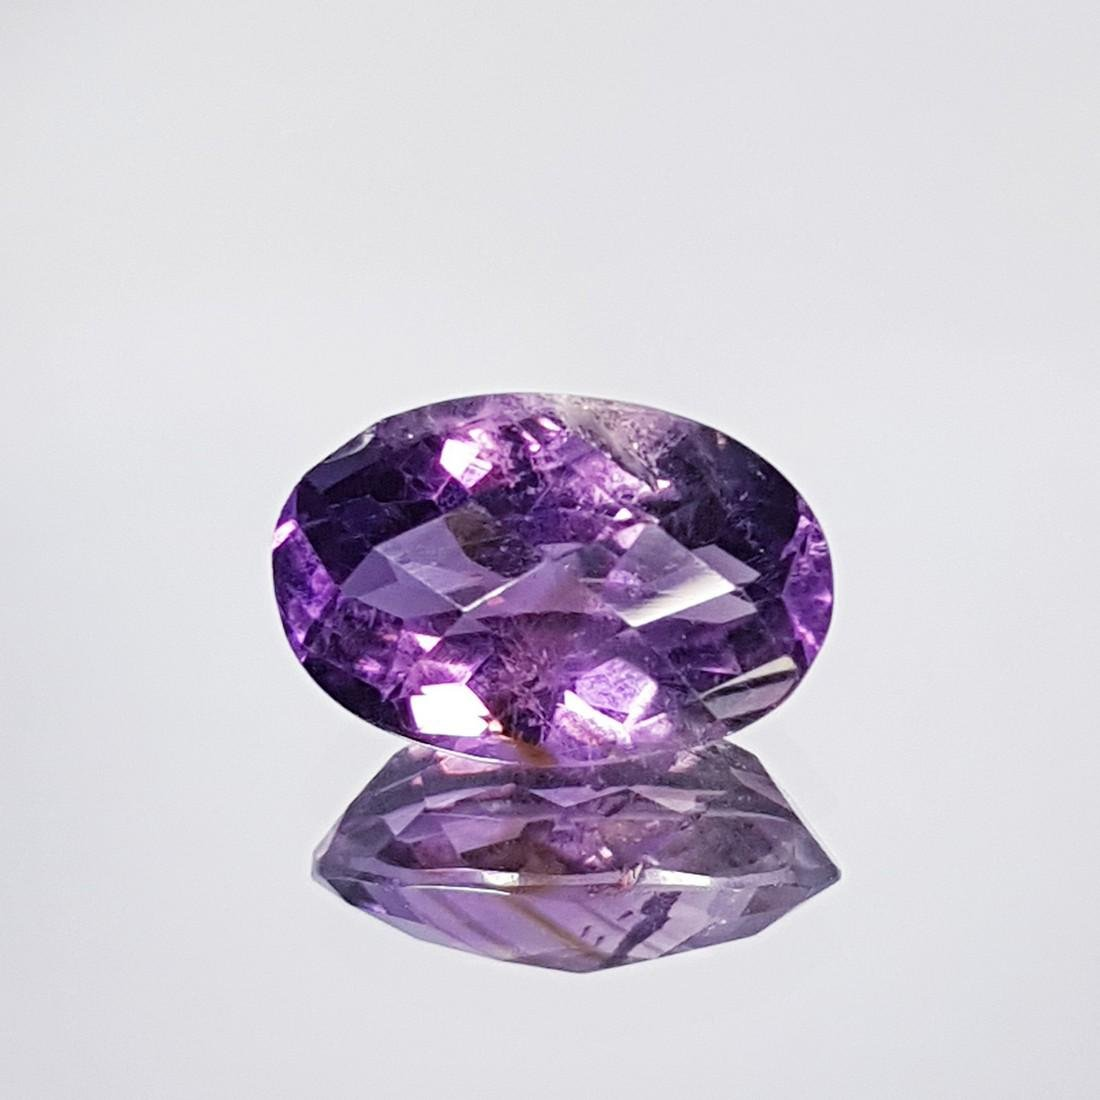 Stunning Luster Natural Amethyst - 7.15 ct - 2